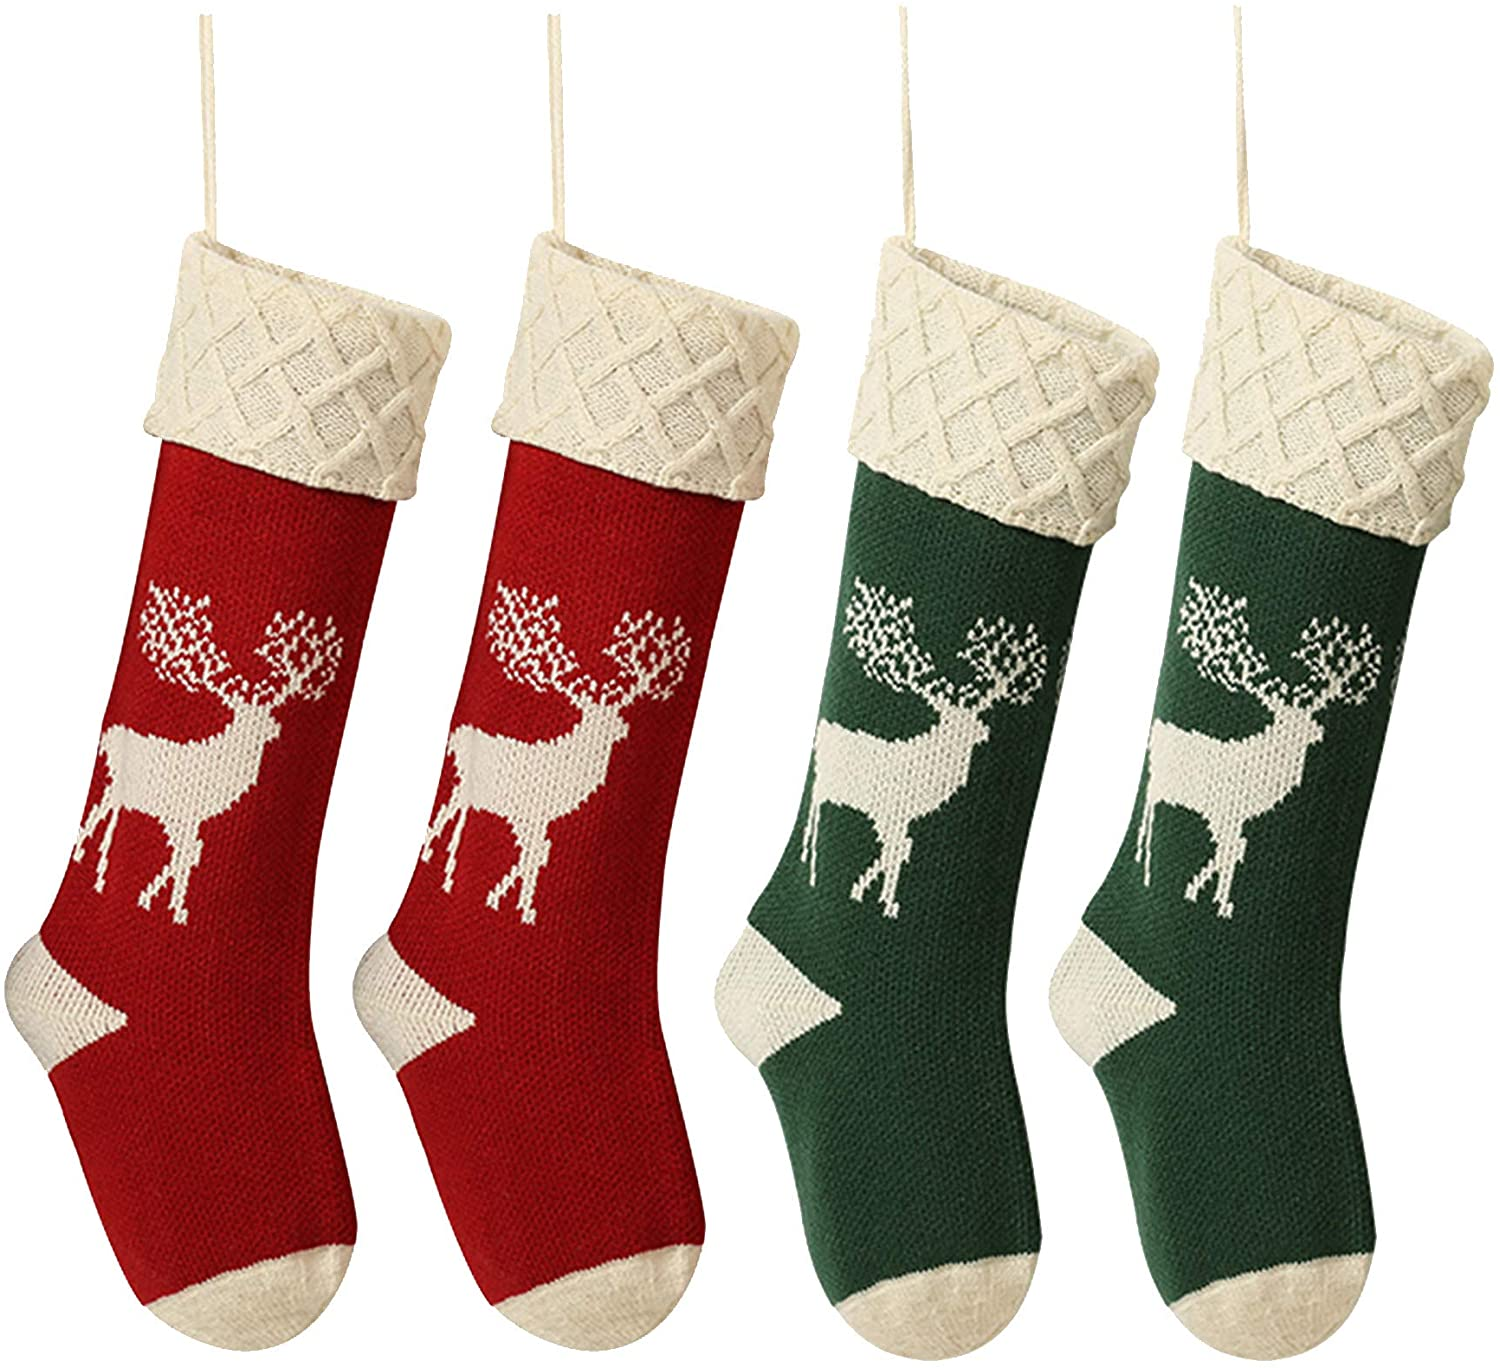 QIMENG Reindeer Christmas Stockings Red and Green 4 Pack 18